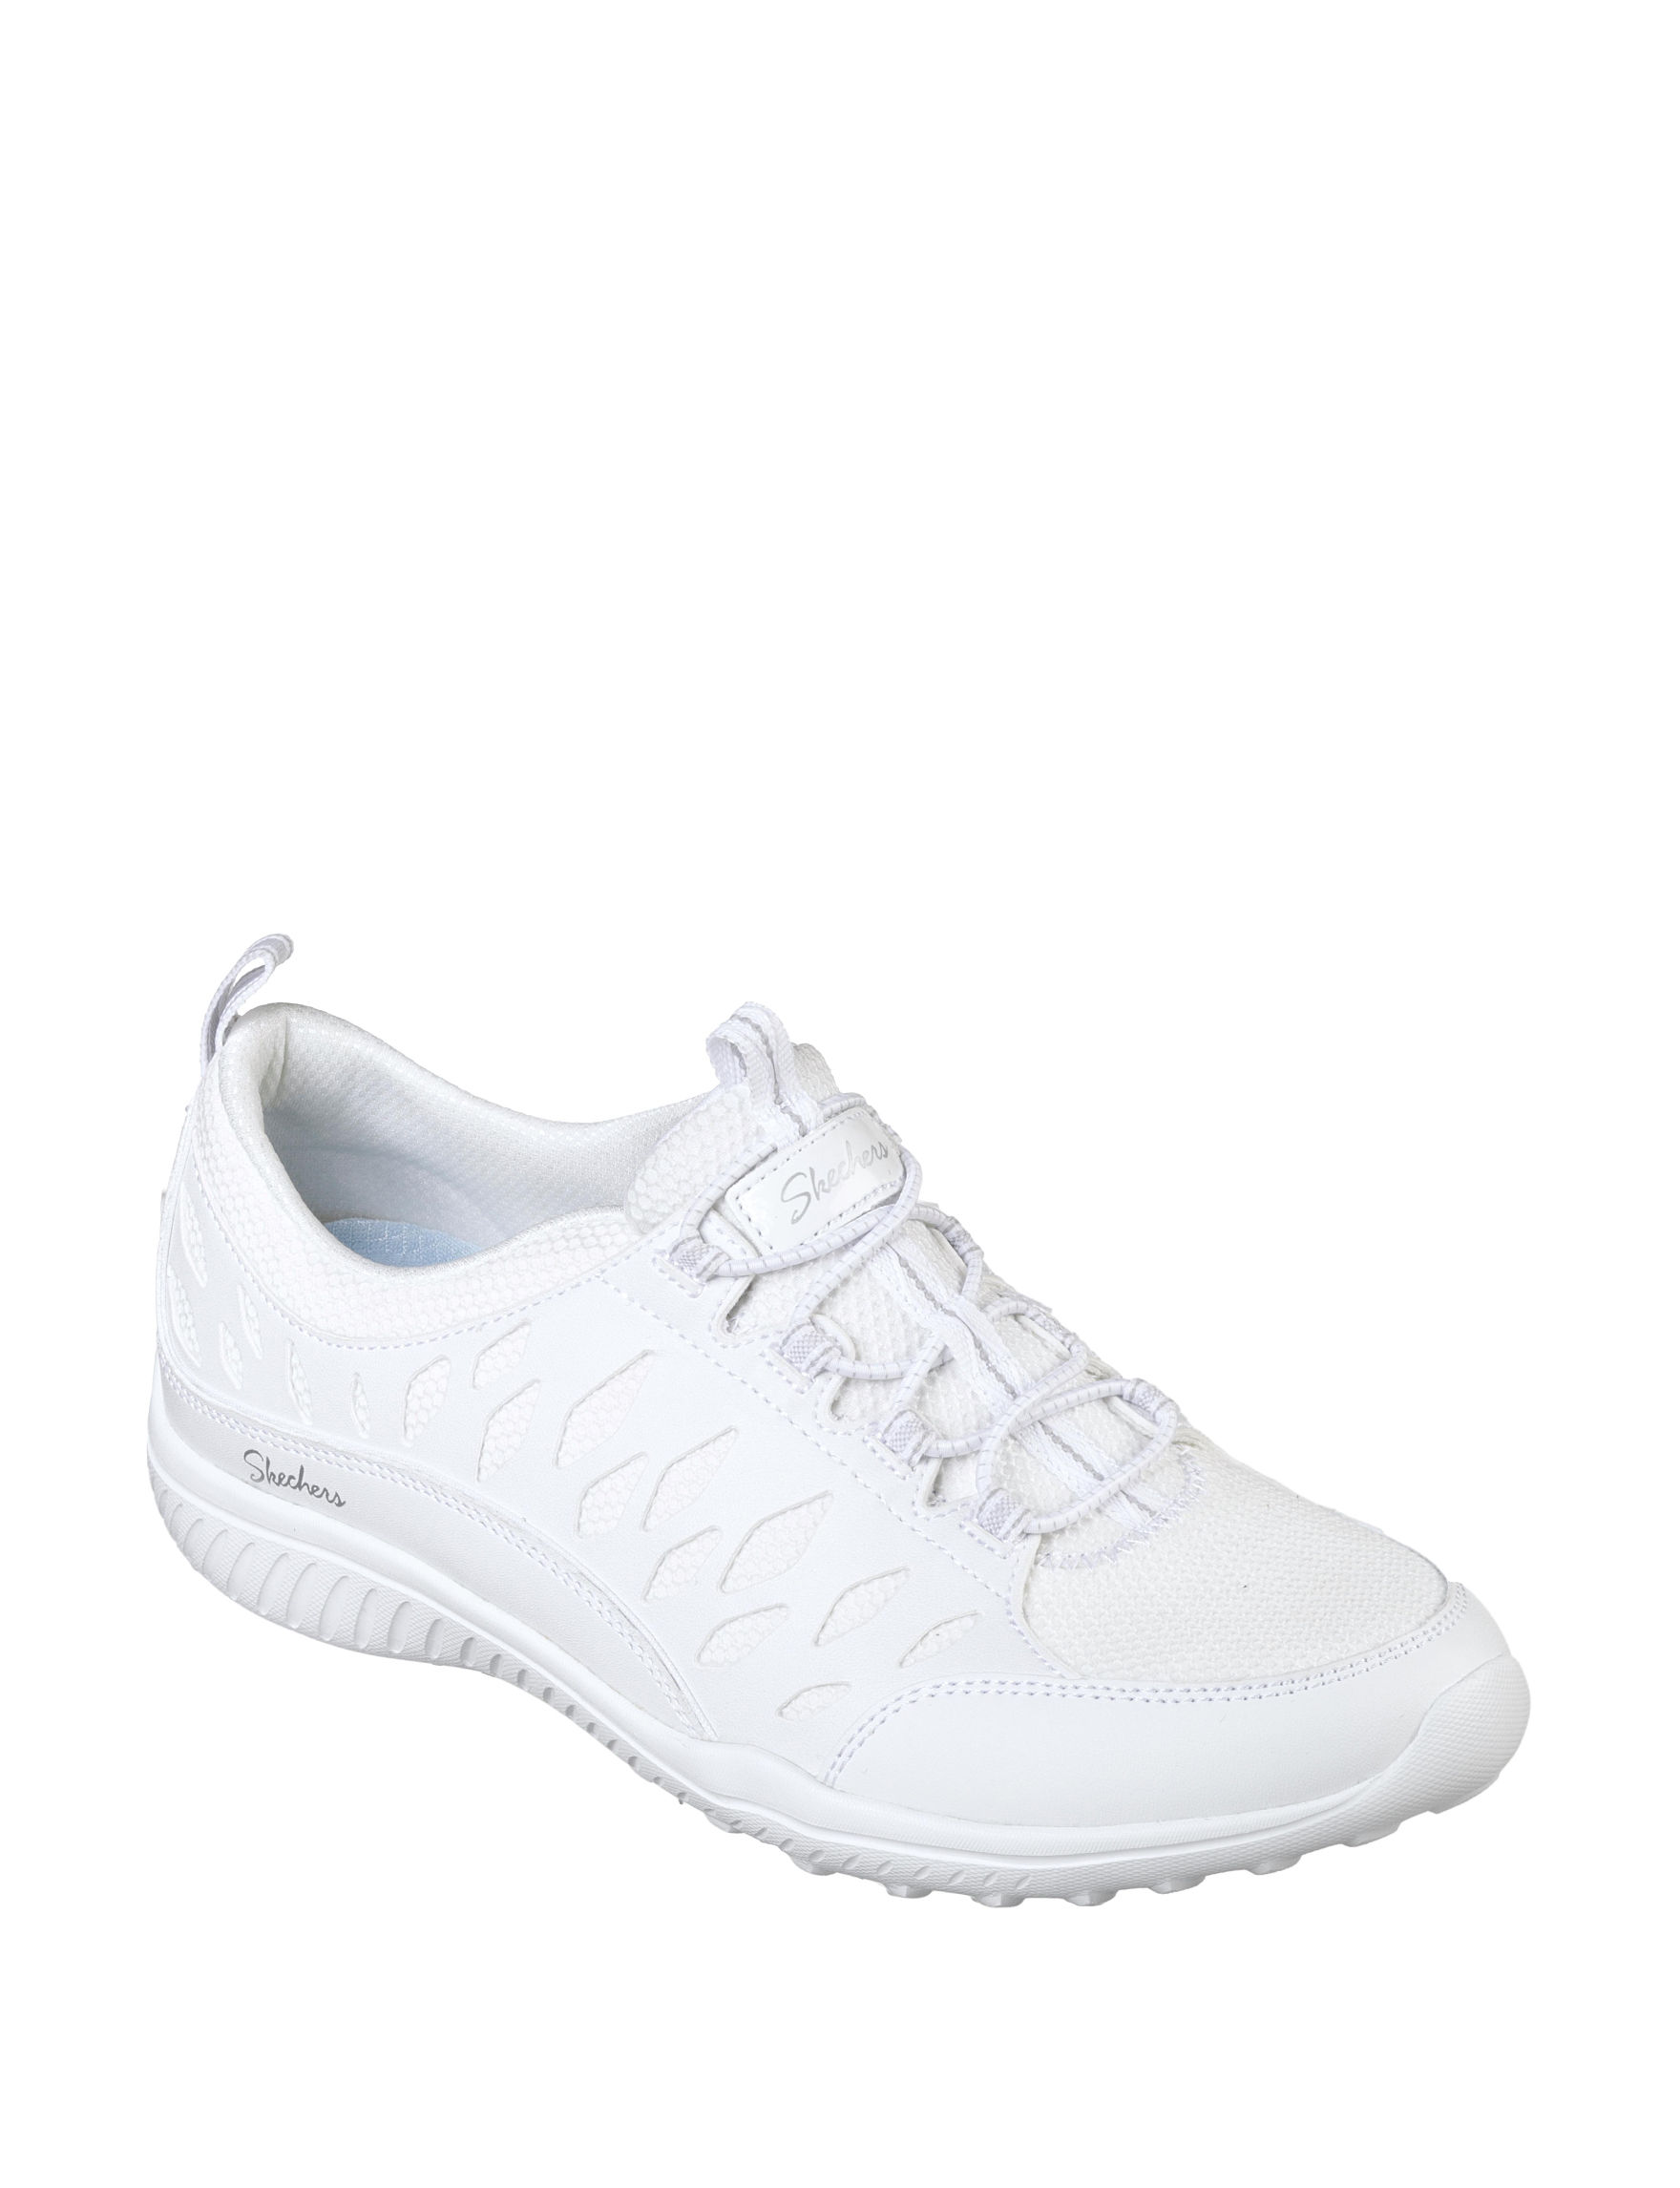 Skechers White Comfort